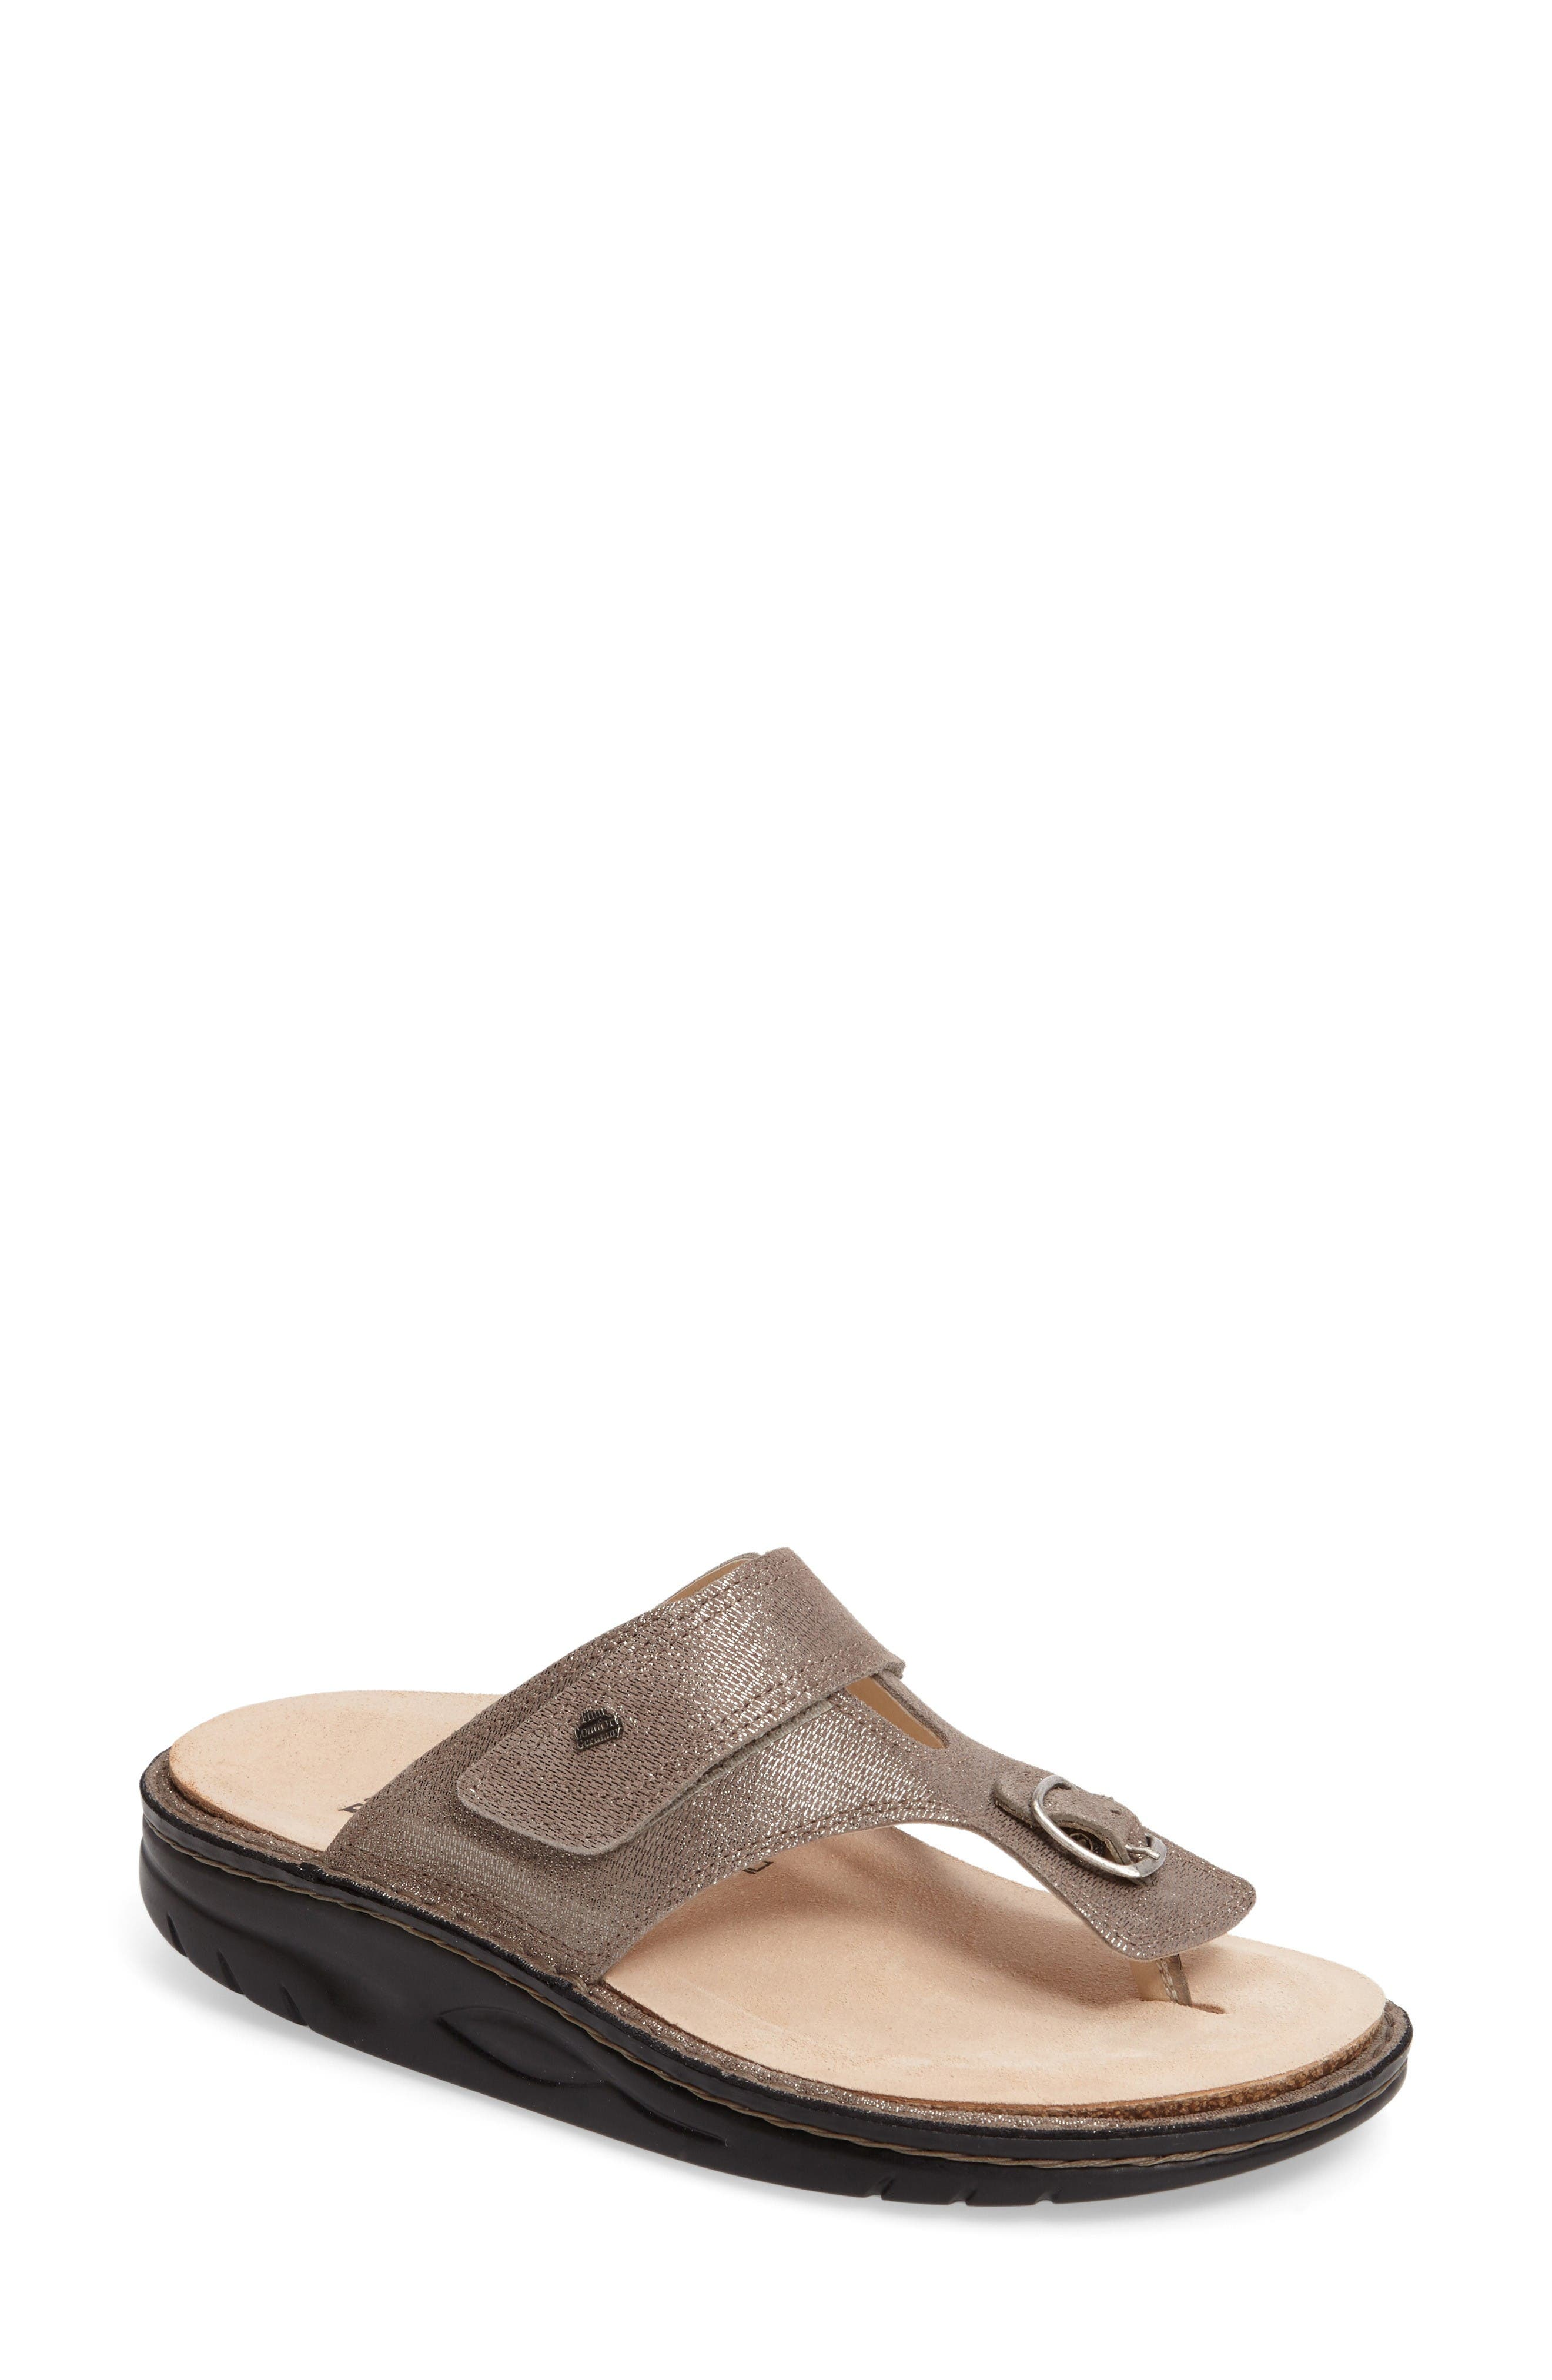 Calmasino Finnamic Flip Flop,                         Main,                         color, Fango Leather